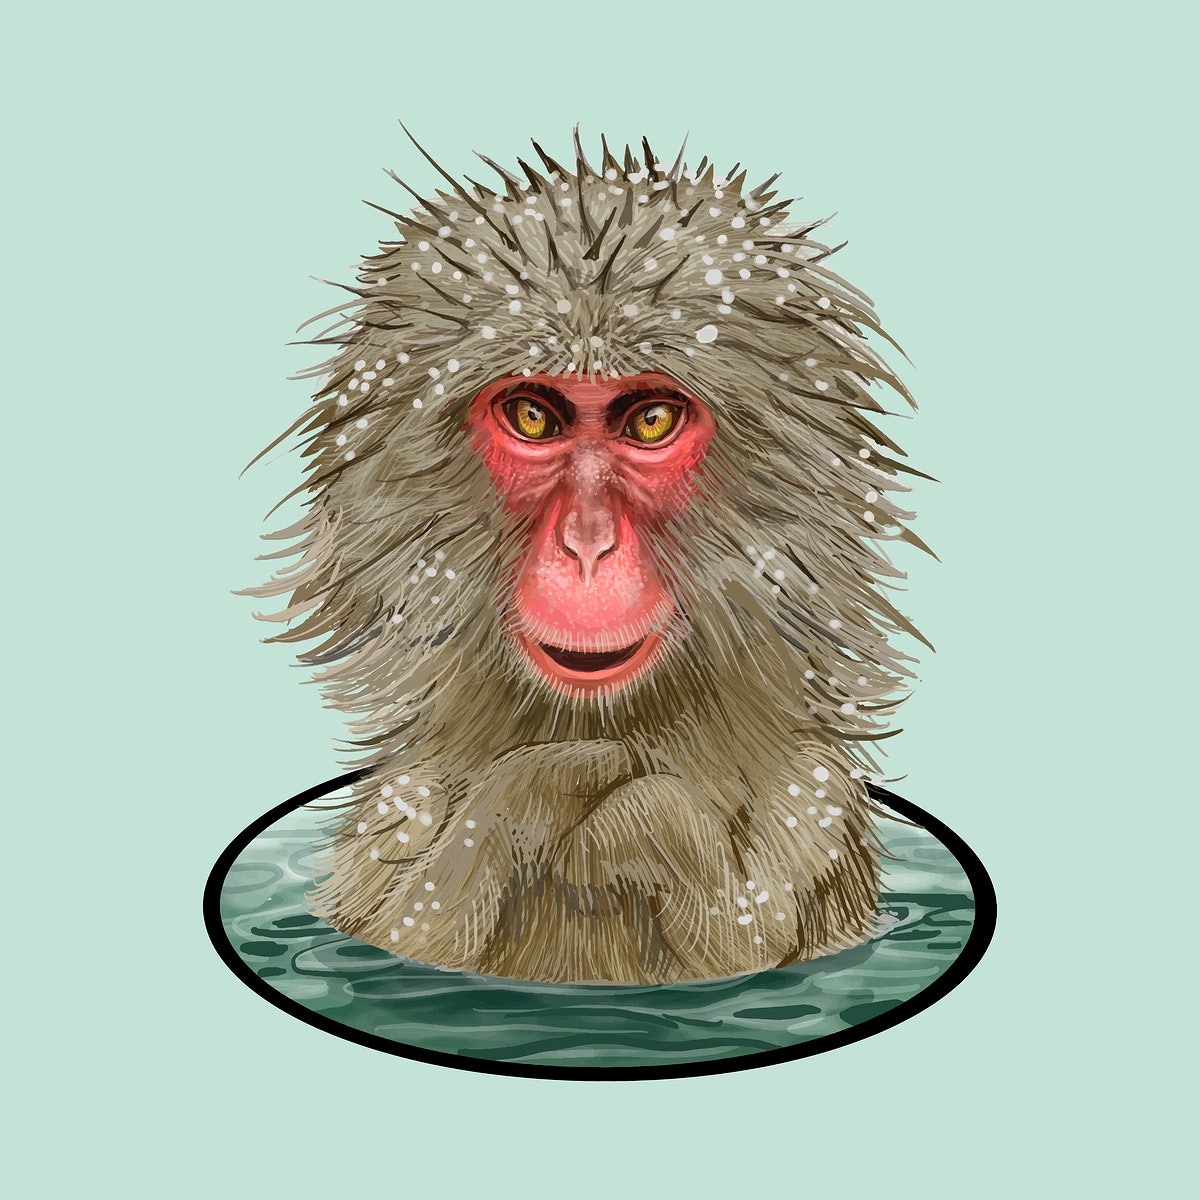 Japanese macaques in an Onsen illustration